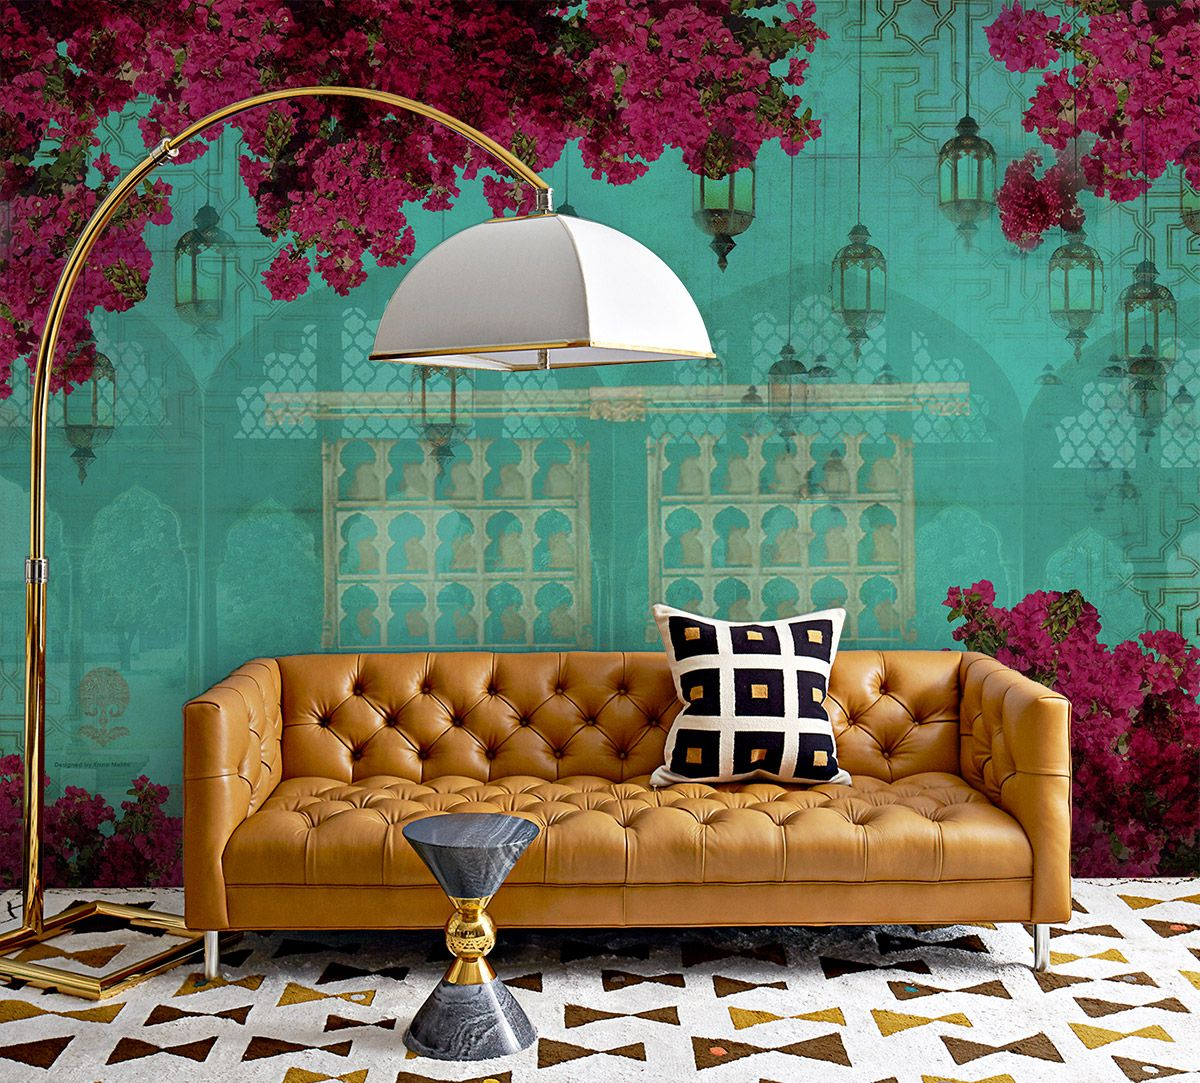 Make your abode monsoon ready: A splash of colour and heritage